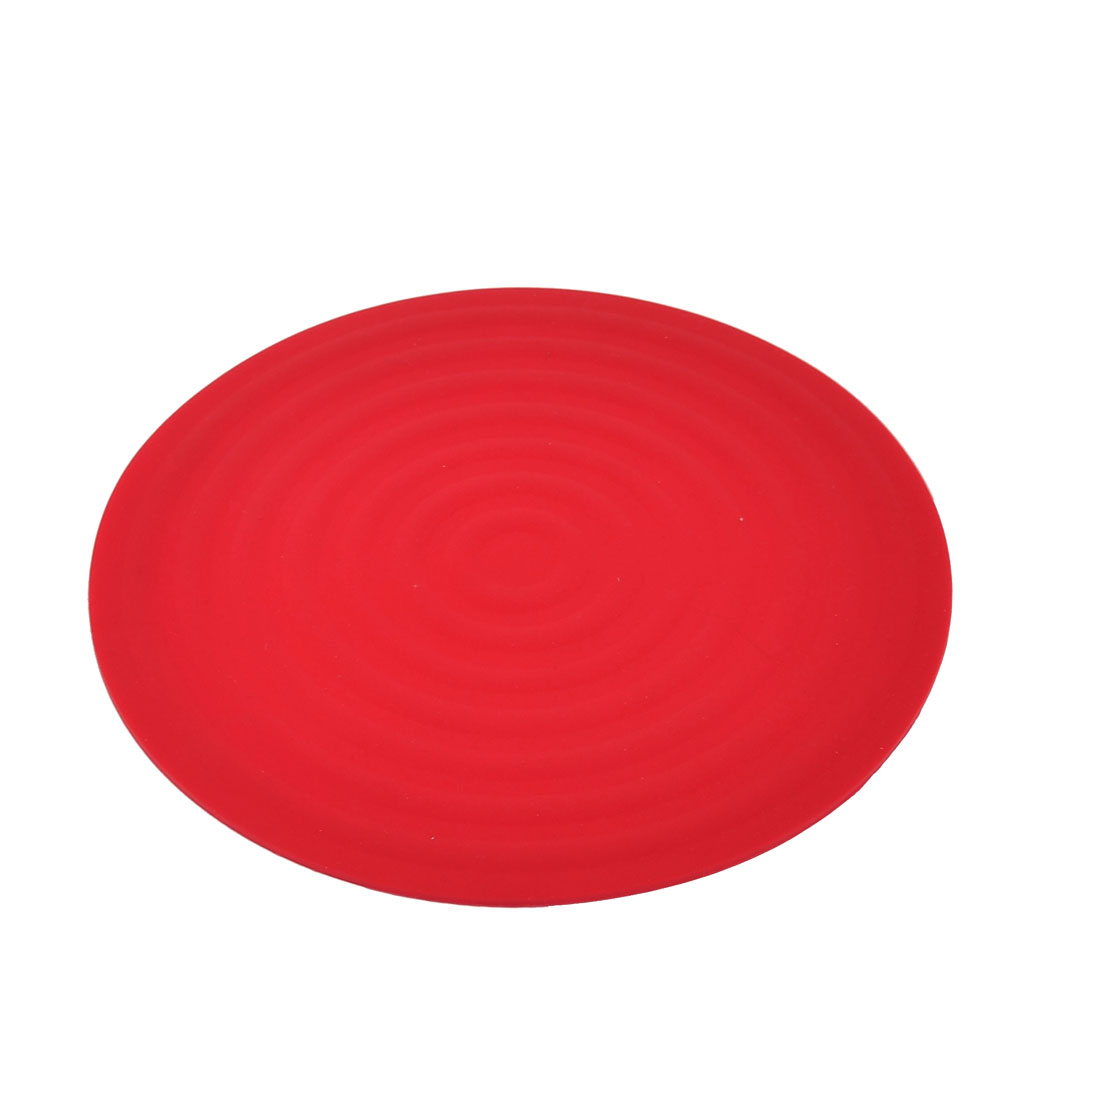 kitchen Pan Pot Bowl Rubber Round Shaped Heat Insulation Mat Pad Holder Red